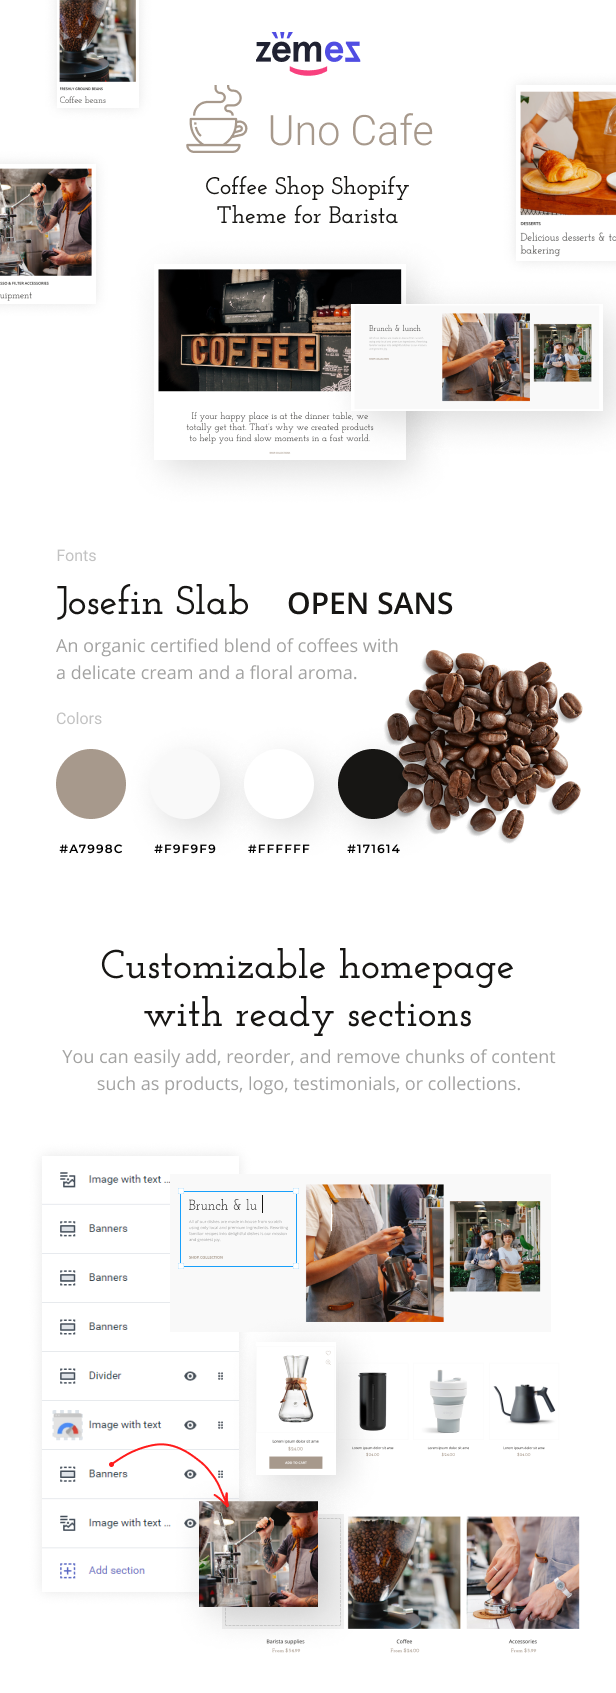 Uno Cafe - Coffee Shop Shopify Theme for Barista - 1